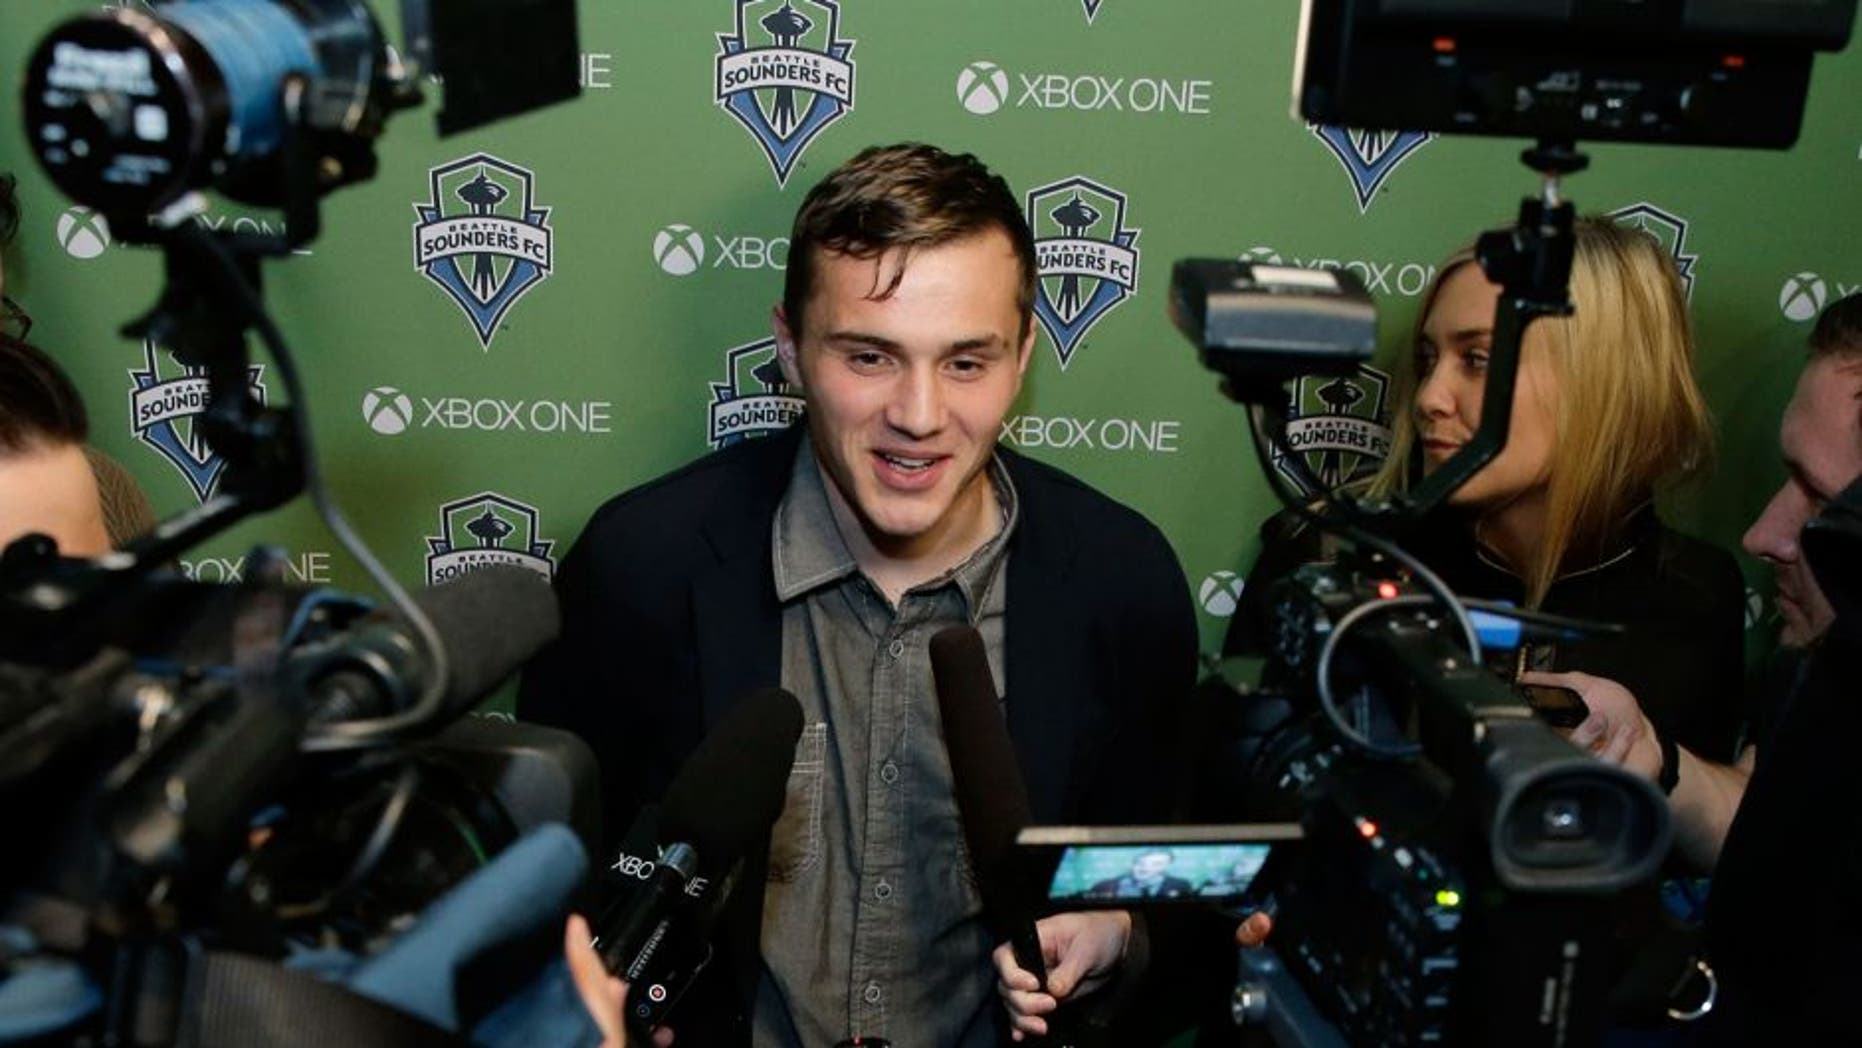 Jordan Morris talks to reporters Thursday, Jan. 21, 2016, in Seattle after the MLS soccer Seattle Sounders FC announced his signing as a forward. Morris, who played for Stanford, was the Hermann Trophy winner in 2015 as the top college player in the country. (AP Photo/Ted S. Warren)